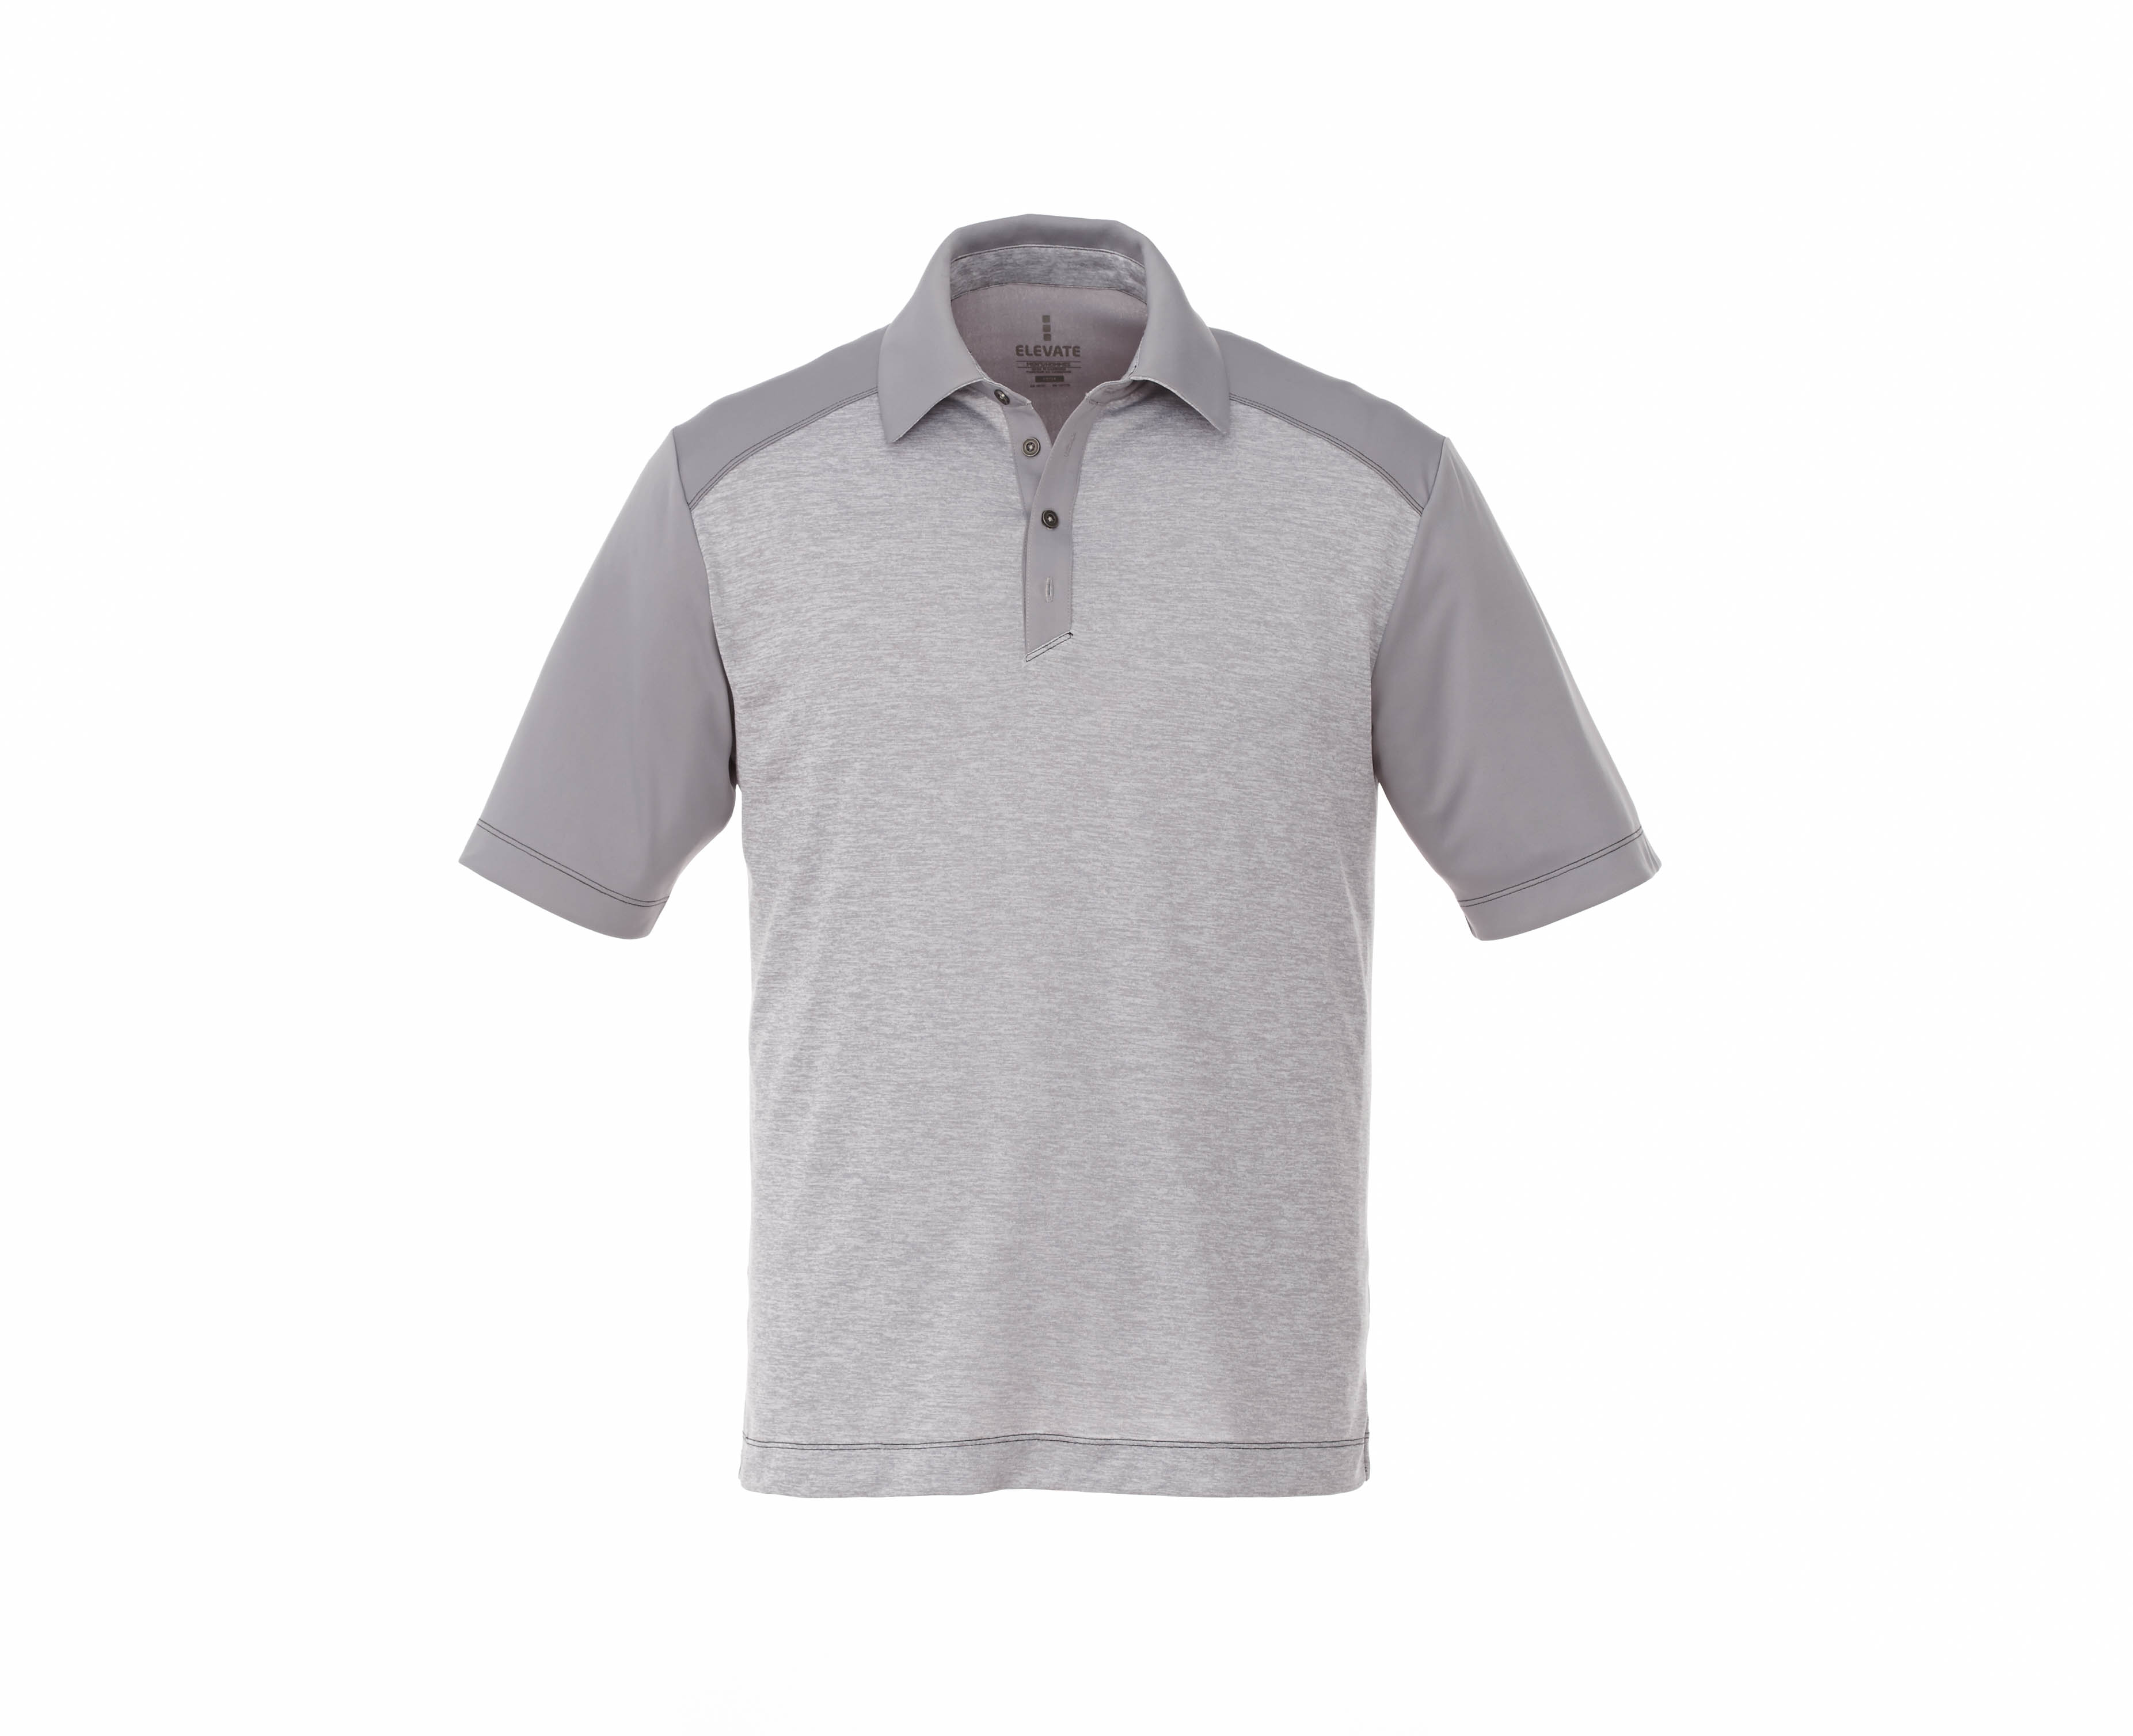 M-SAGANO Short Sleeve Polo